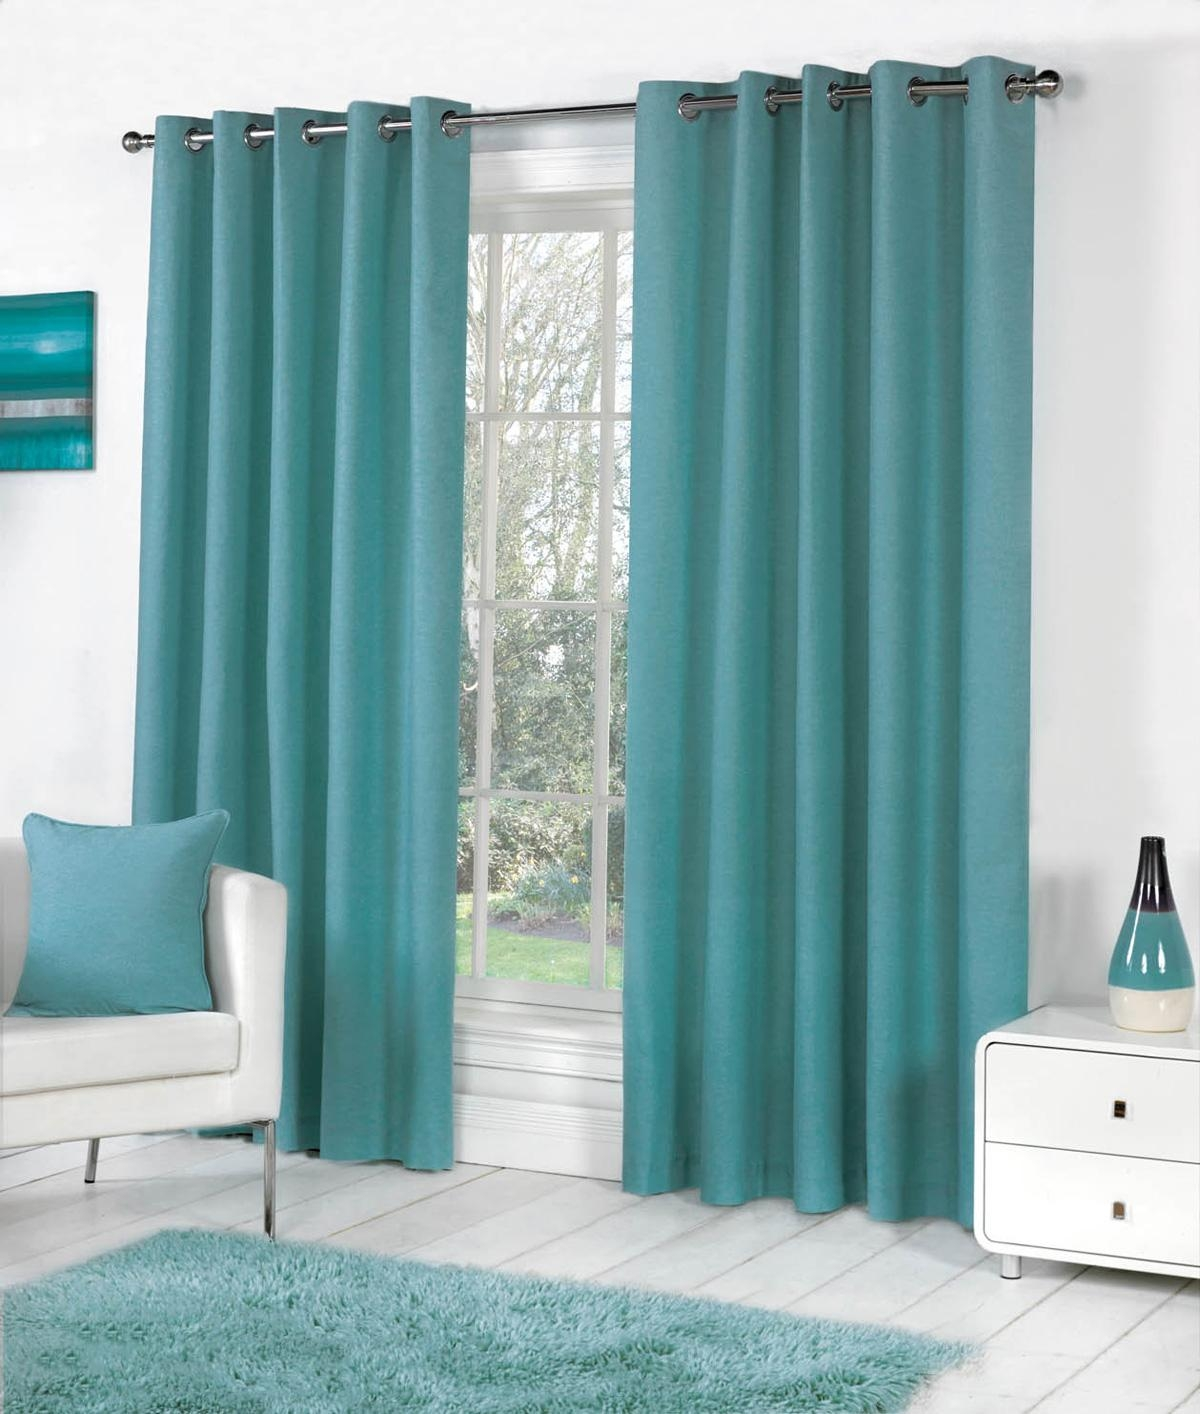 Eyelet Curtains Affordable And Quality Curtains Terrys Fabrics With Regard To Short Drop Ready Made Curtains (View 9 of 15)